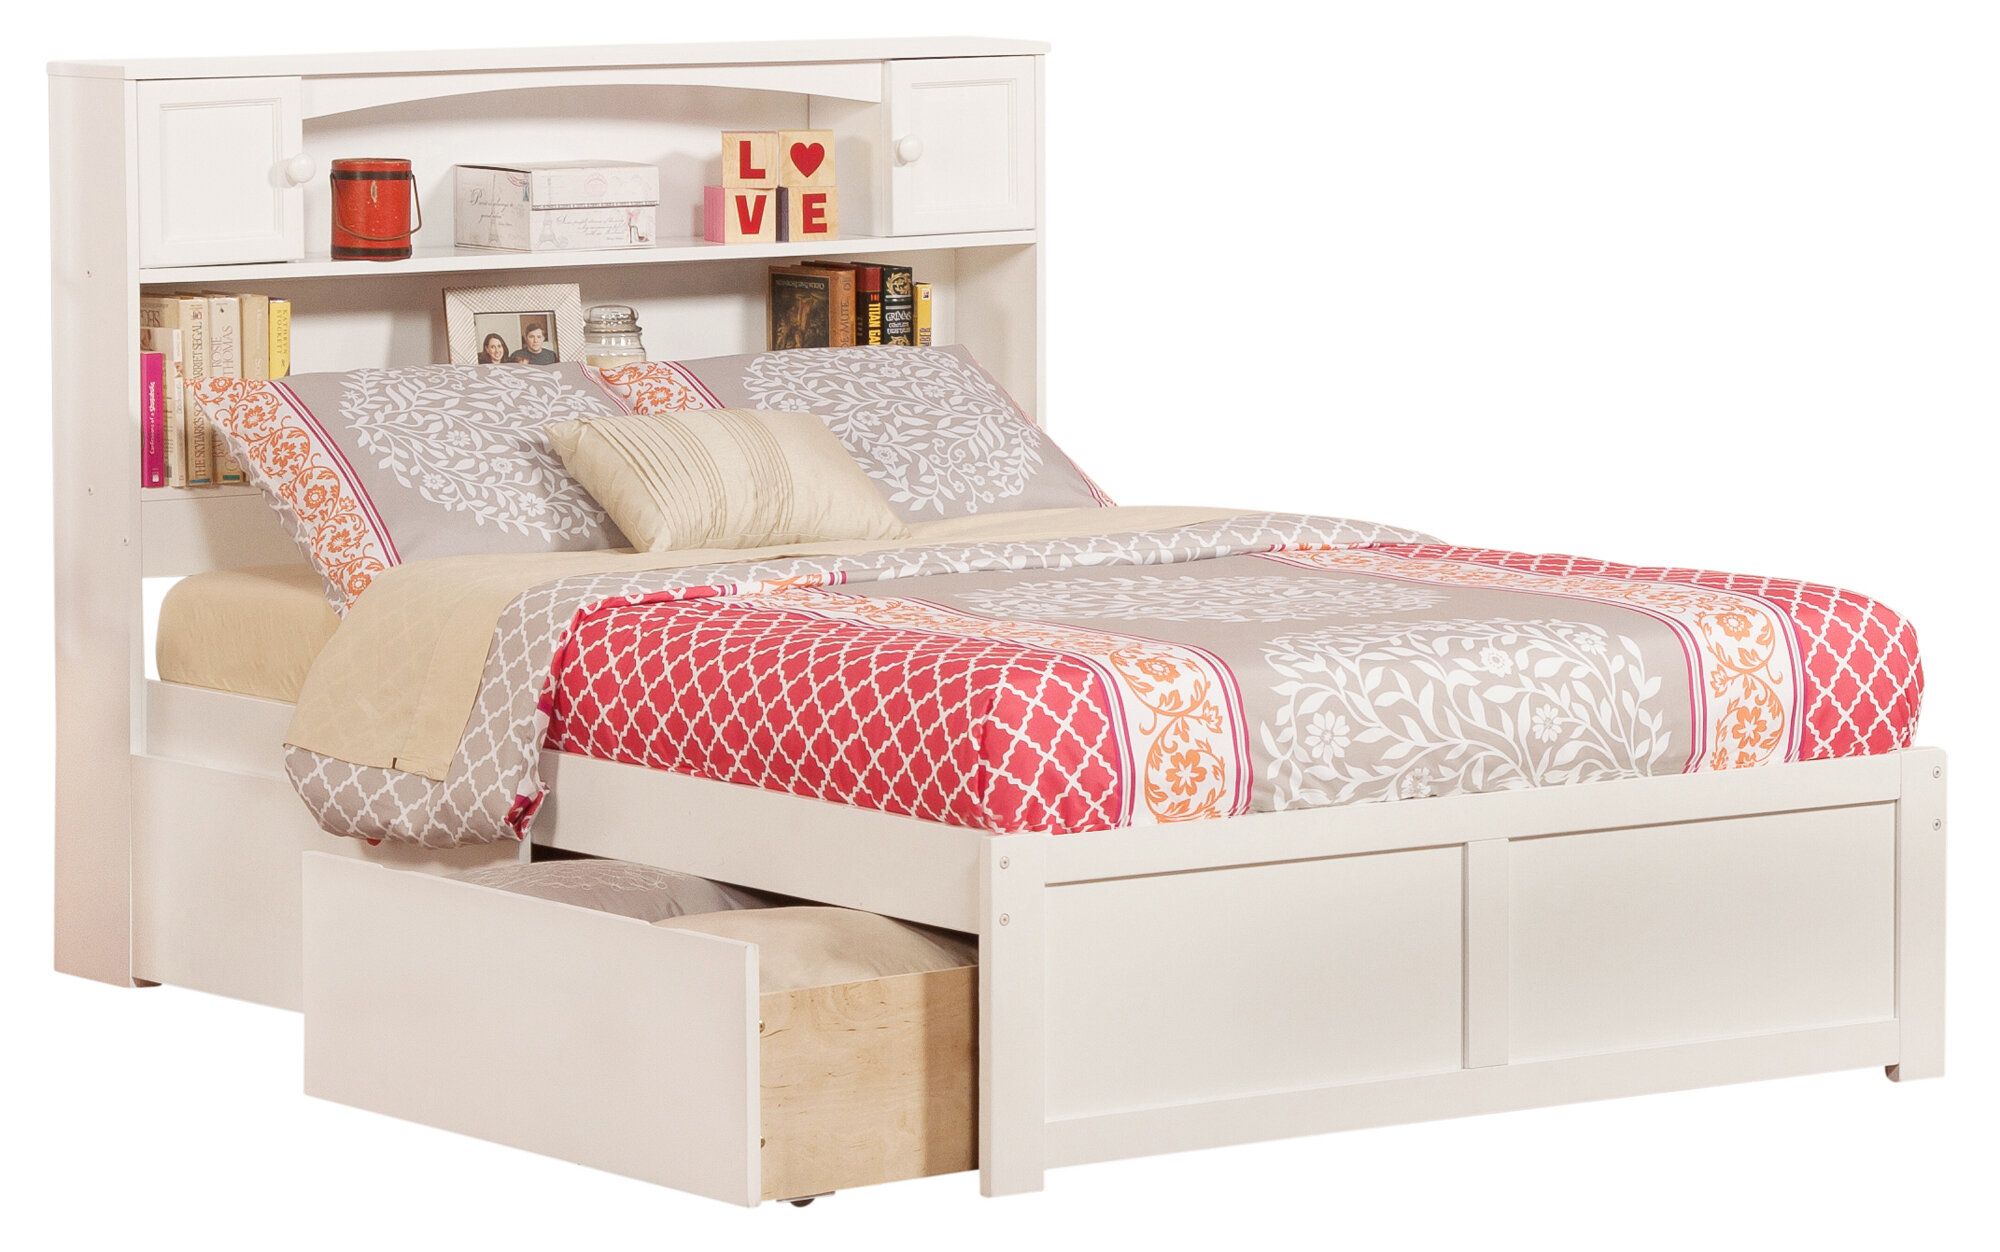 Full Double Size Storage Beds You Ll Love In 2020 Wayfair